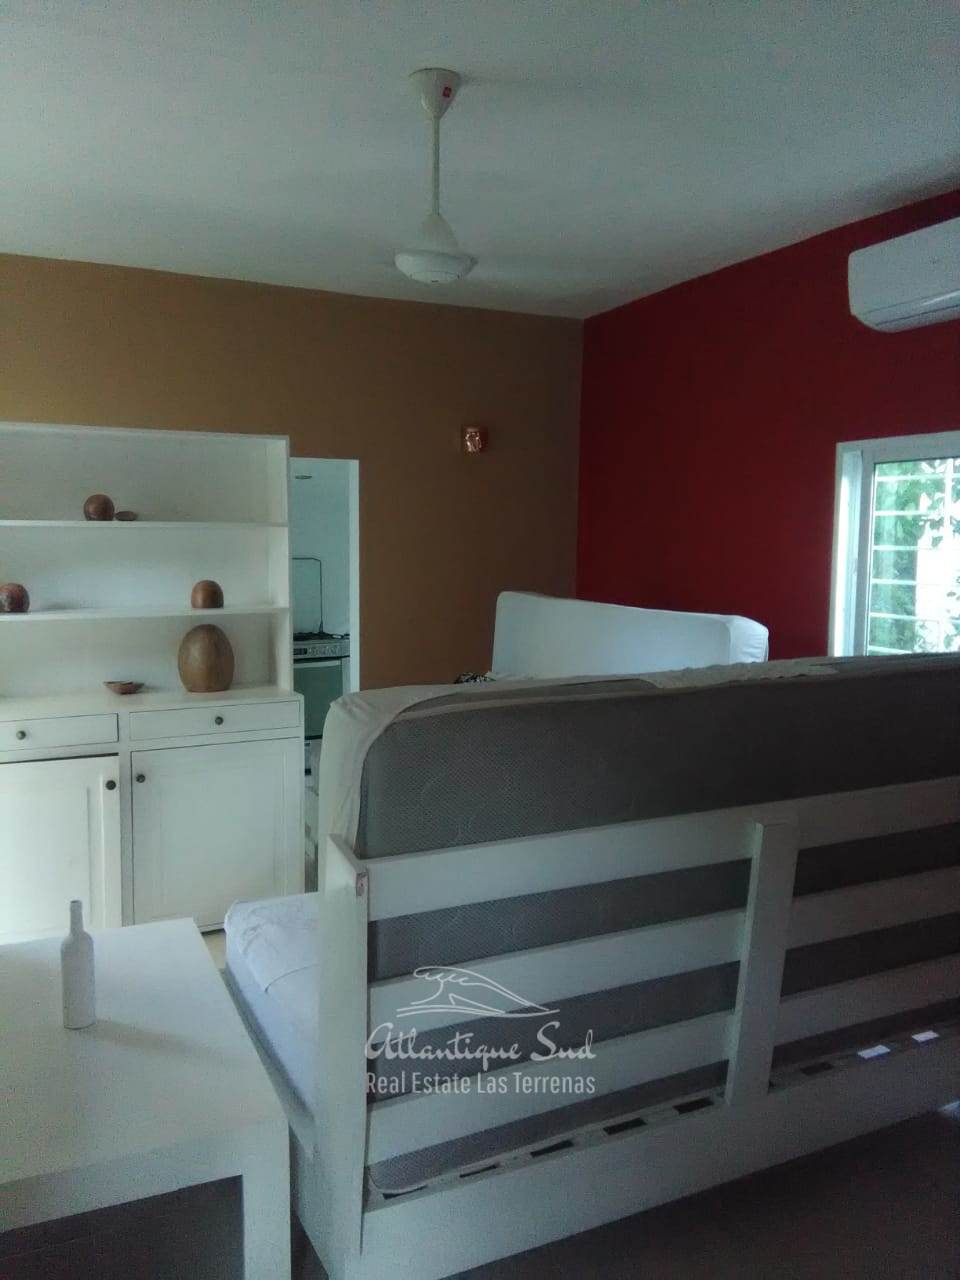 Hotel for sale steps from te beach Real Estate Las Terrenas Atlantique Sud Dominican Republic3.jpeg